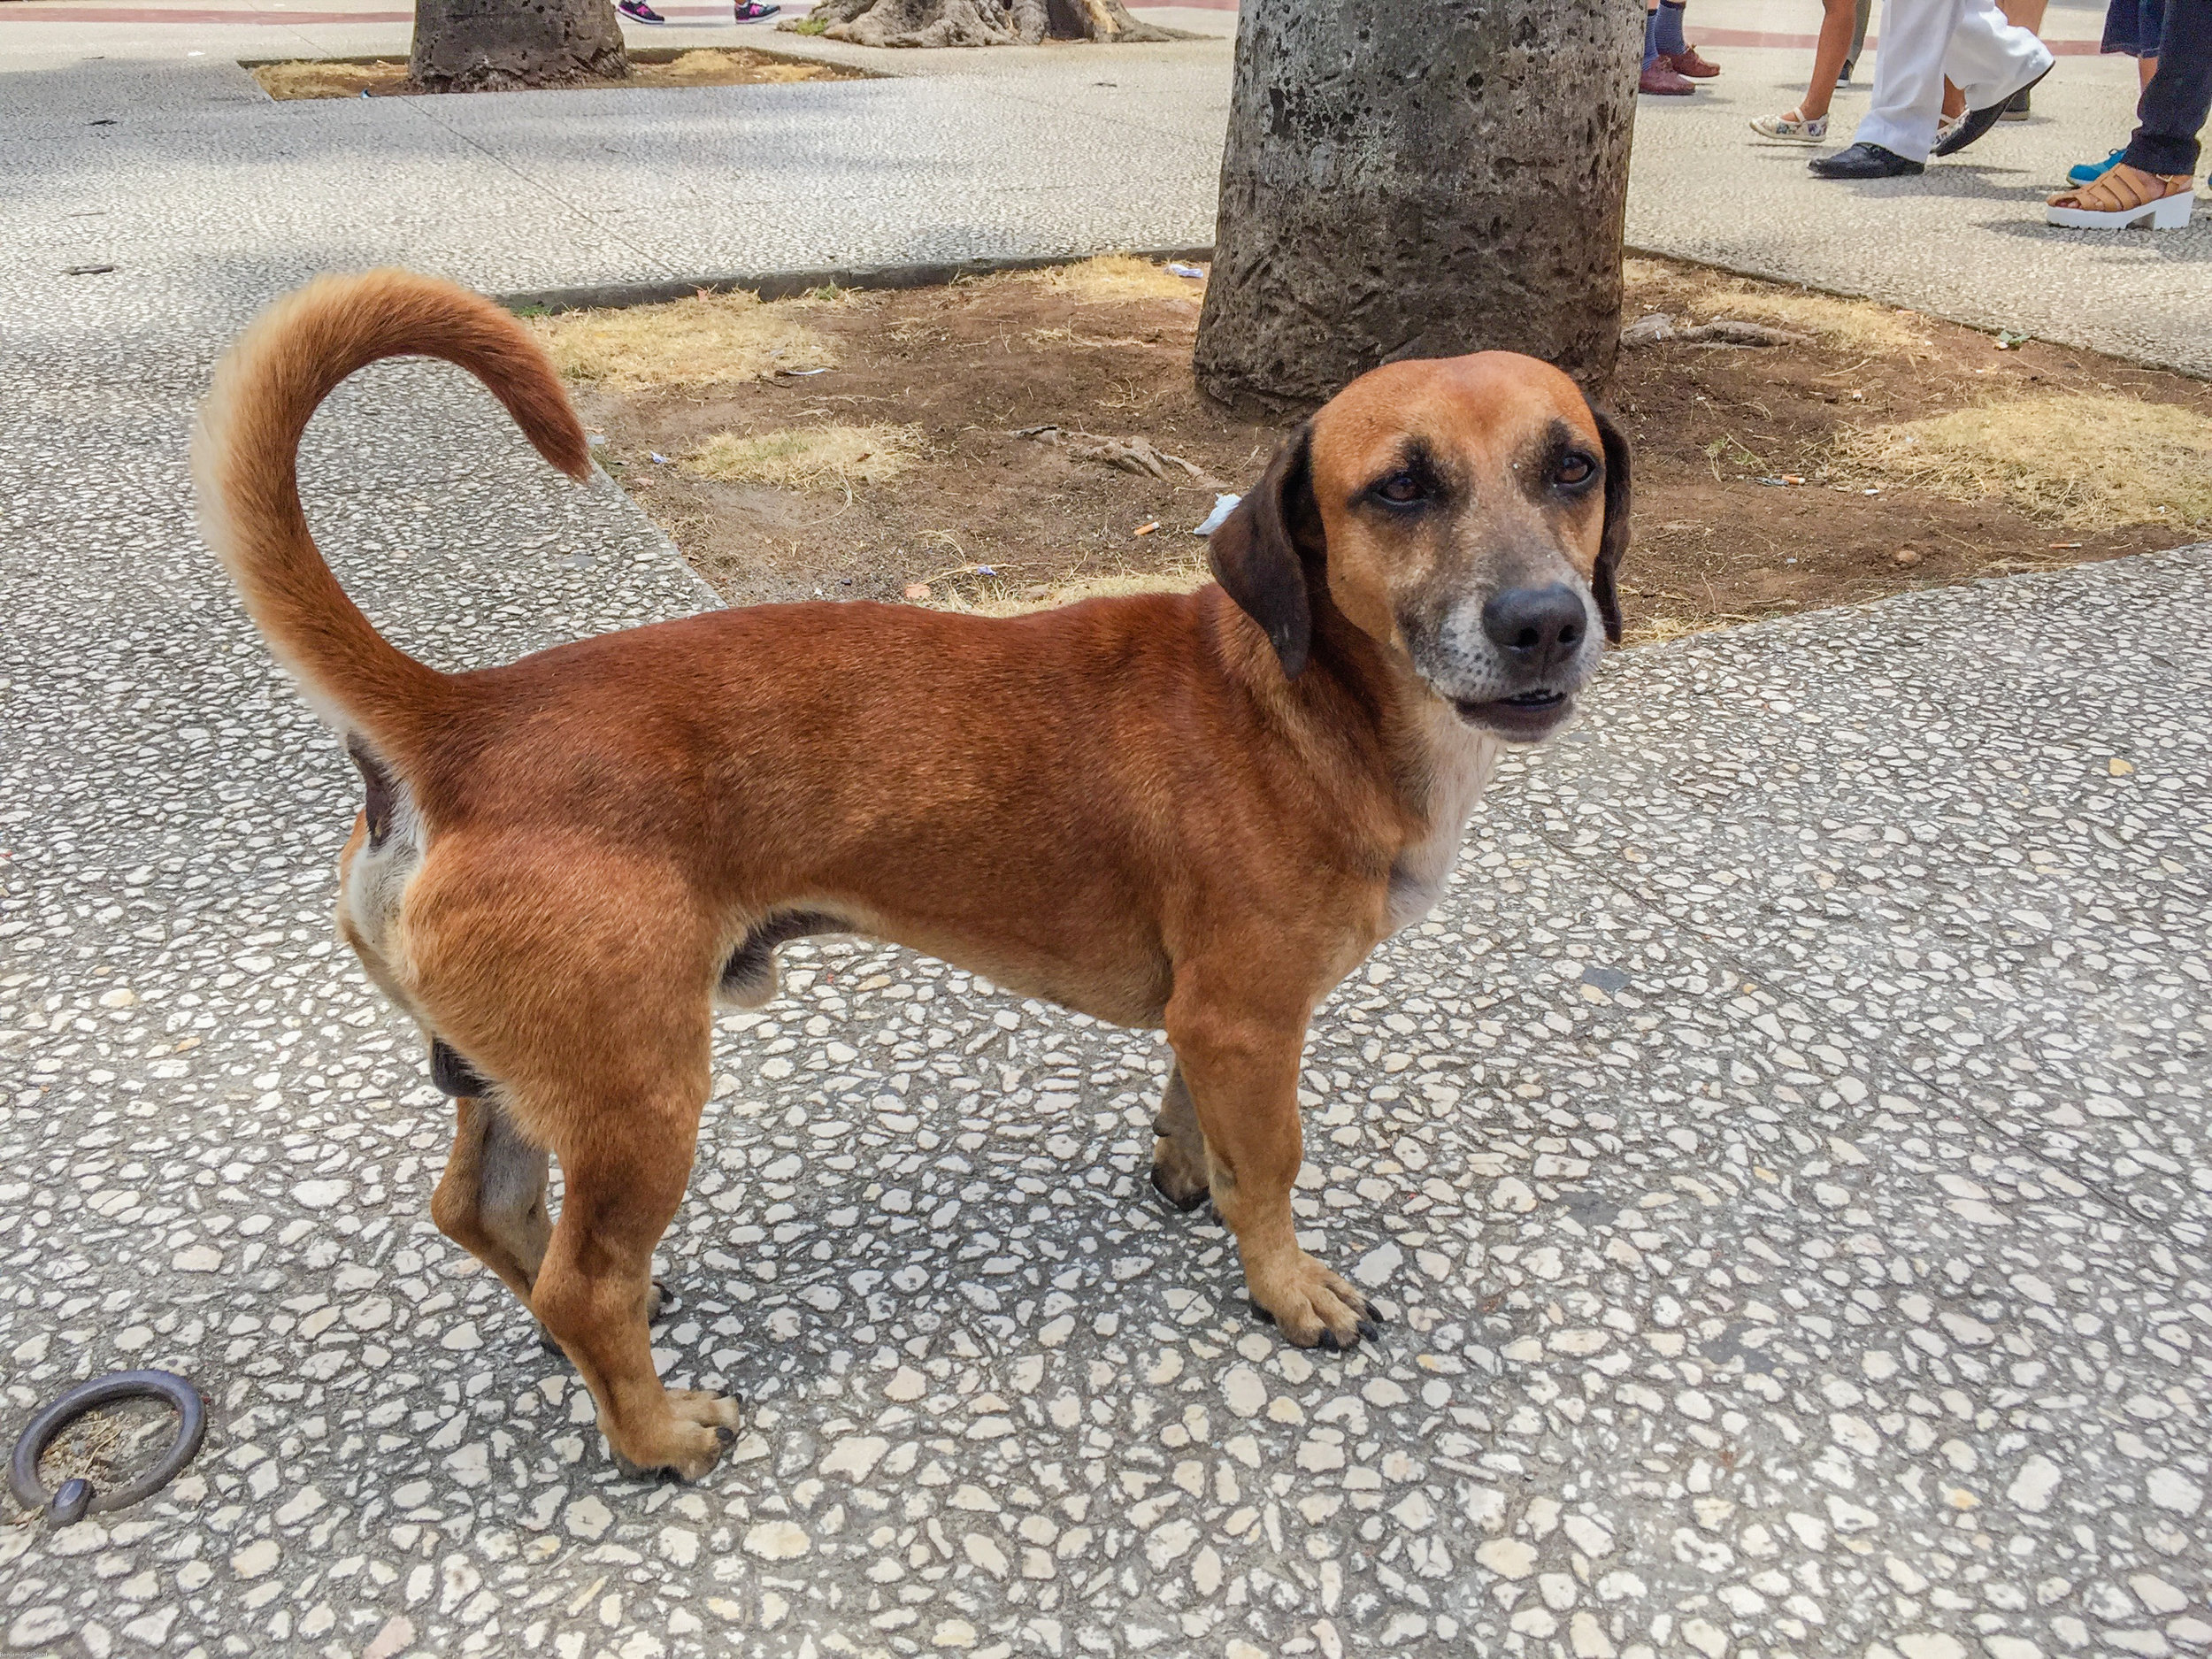 Found this guy trotting through a plaza in Havana. What a handsome fellow!